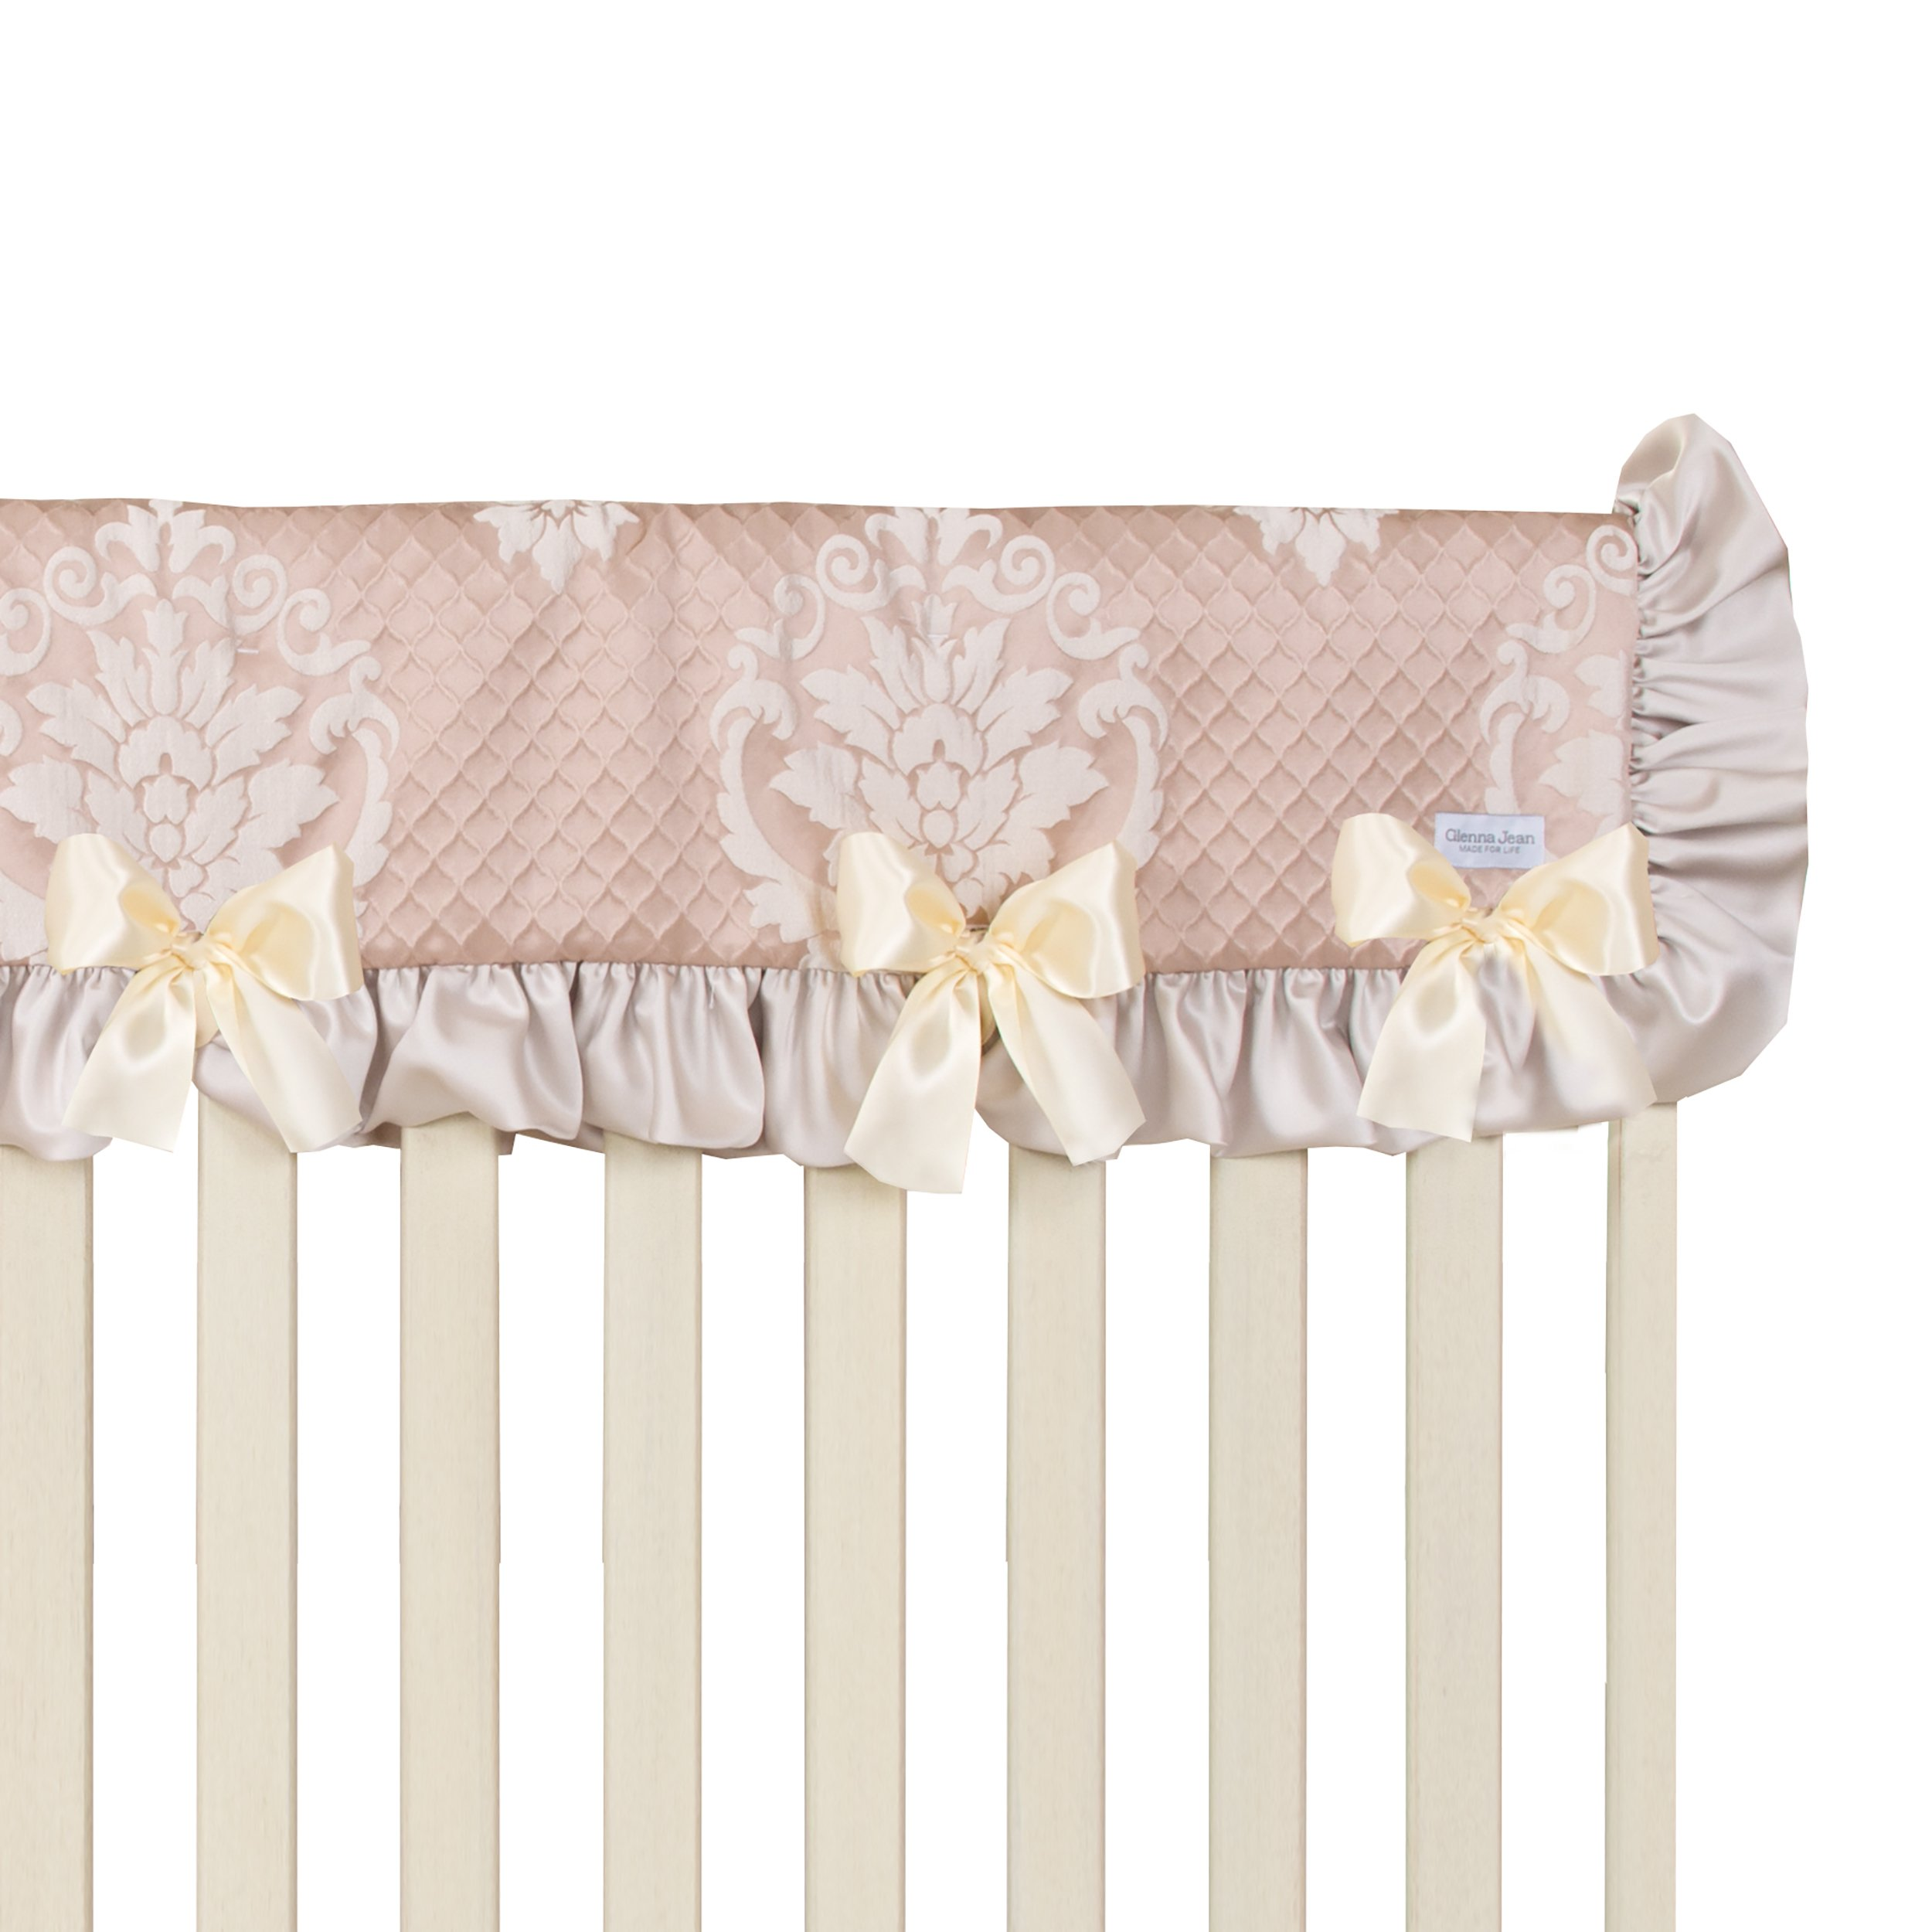 Glenna Jean Angelica Convertible Crib Rail Protecto, Pink, Long, one Size by Glenna Jean